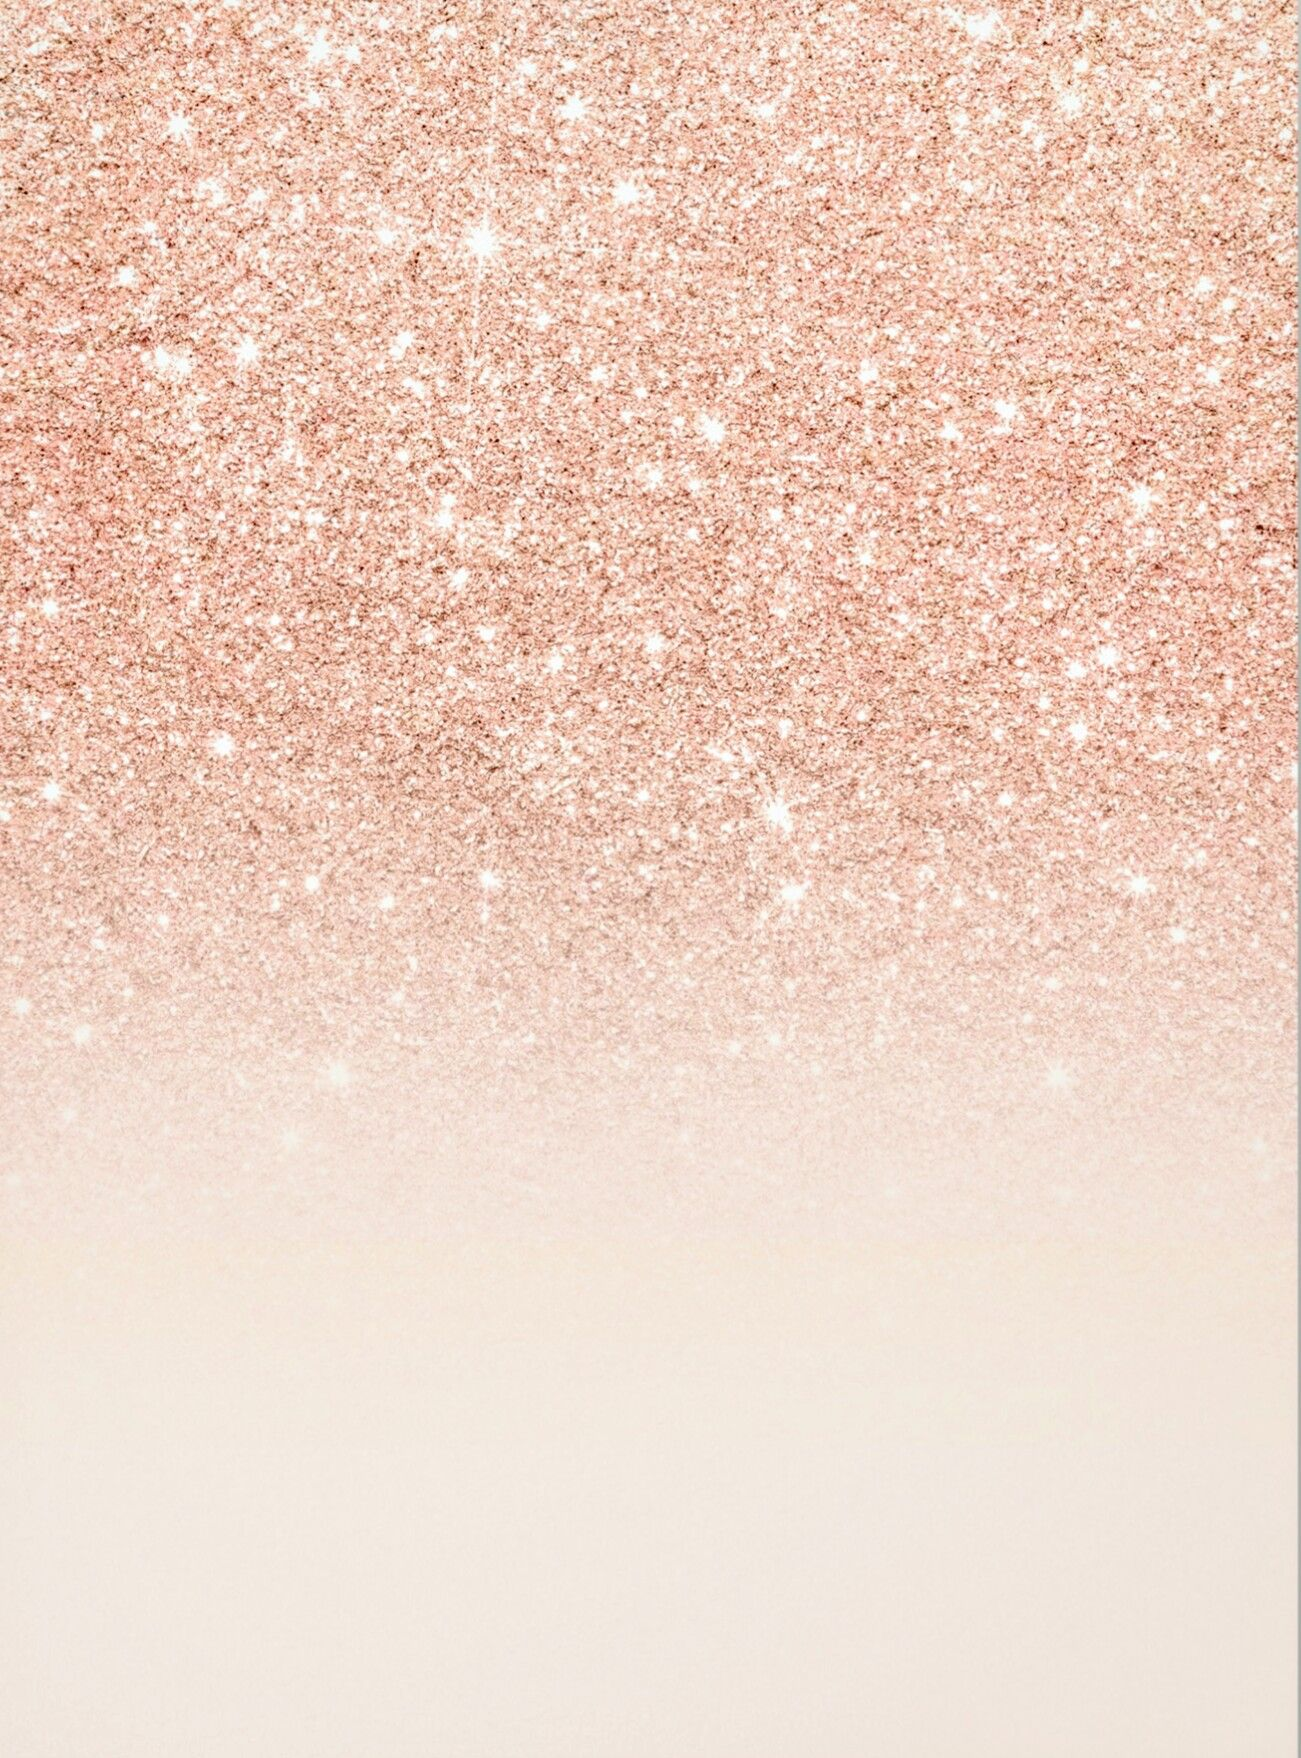 Pinterest xosarahxbethxo w llp p r in 2019 gold - Background rose gold ...